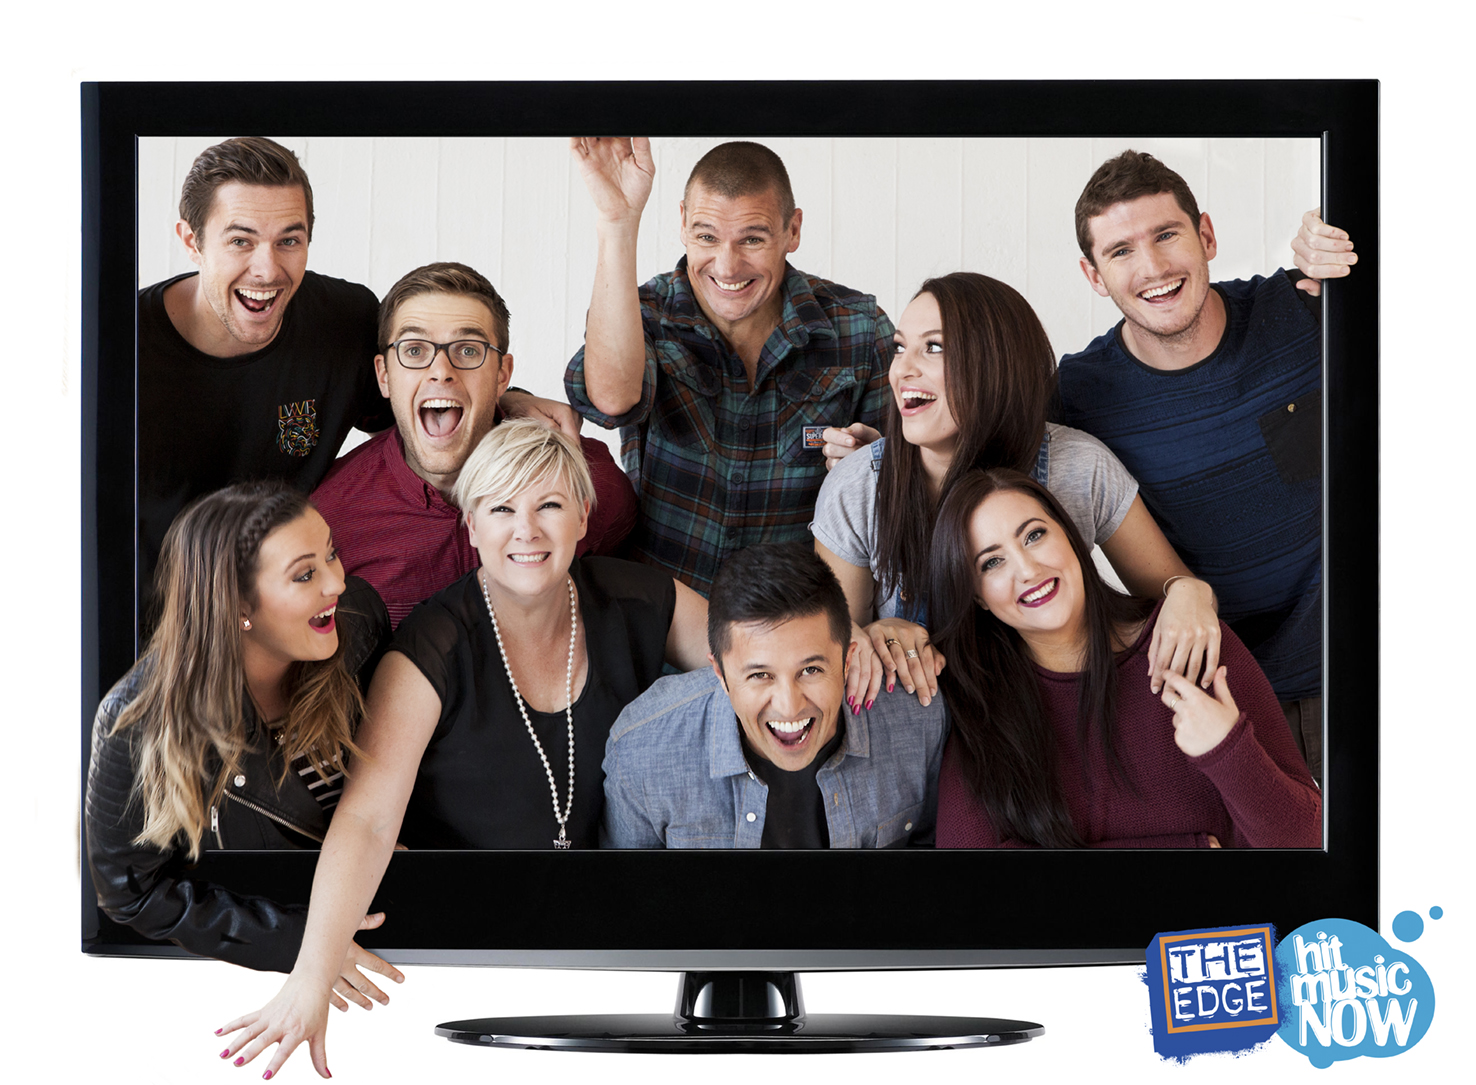 Schedule, launch date announced for Edge TV - NZ Herald